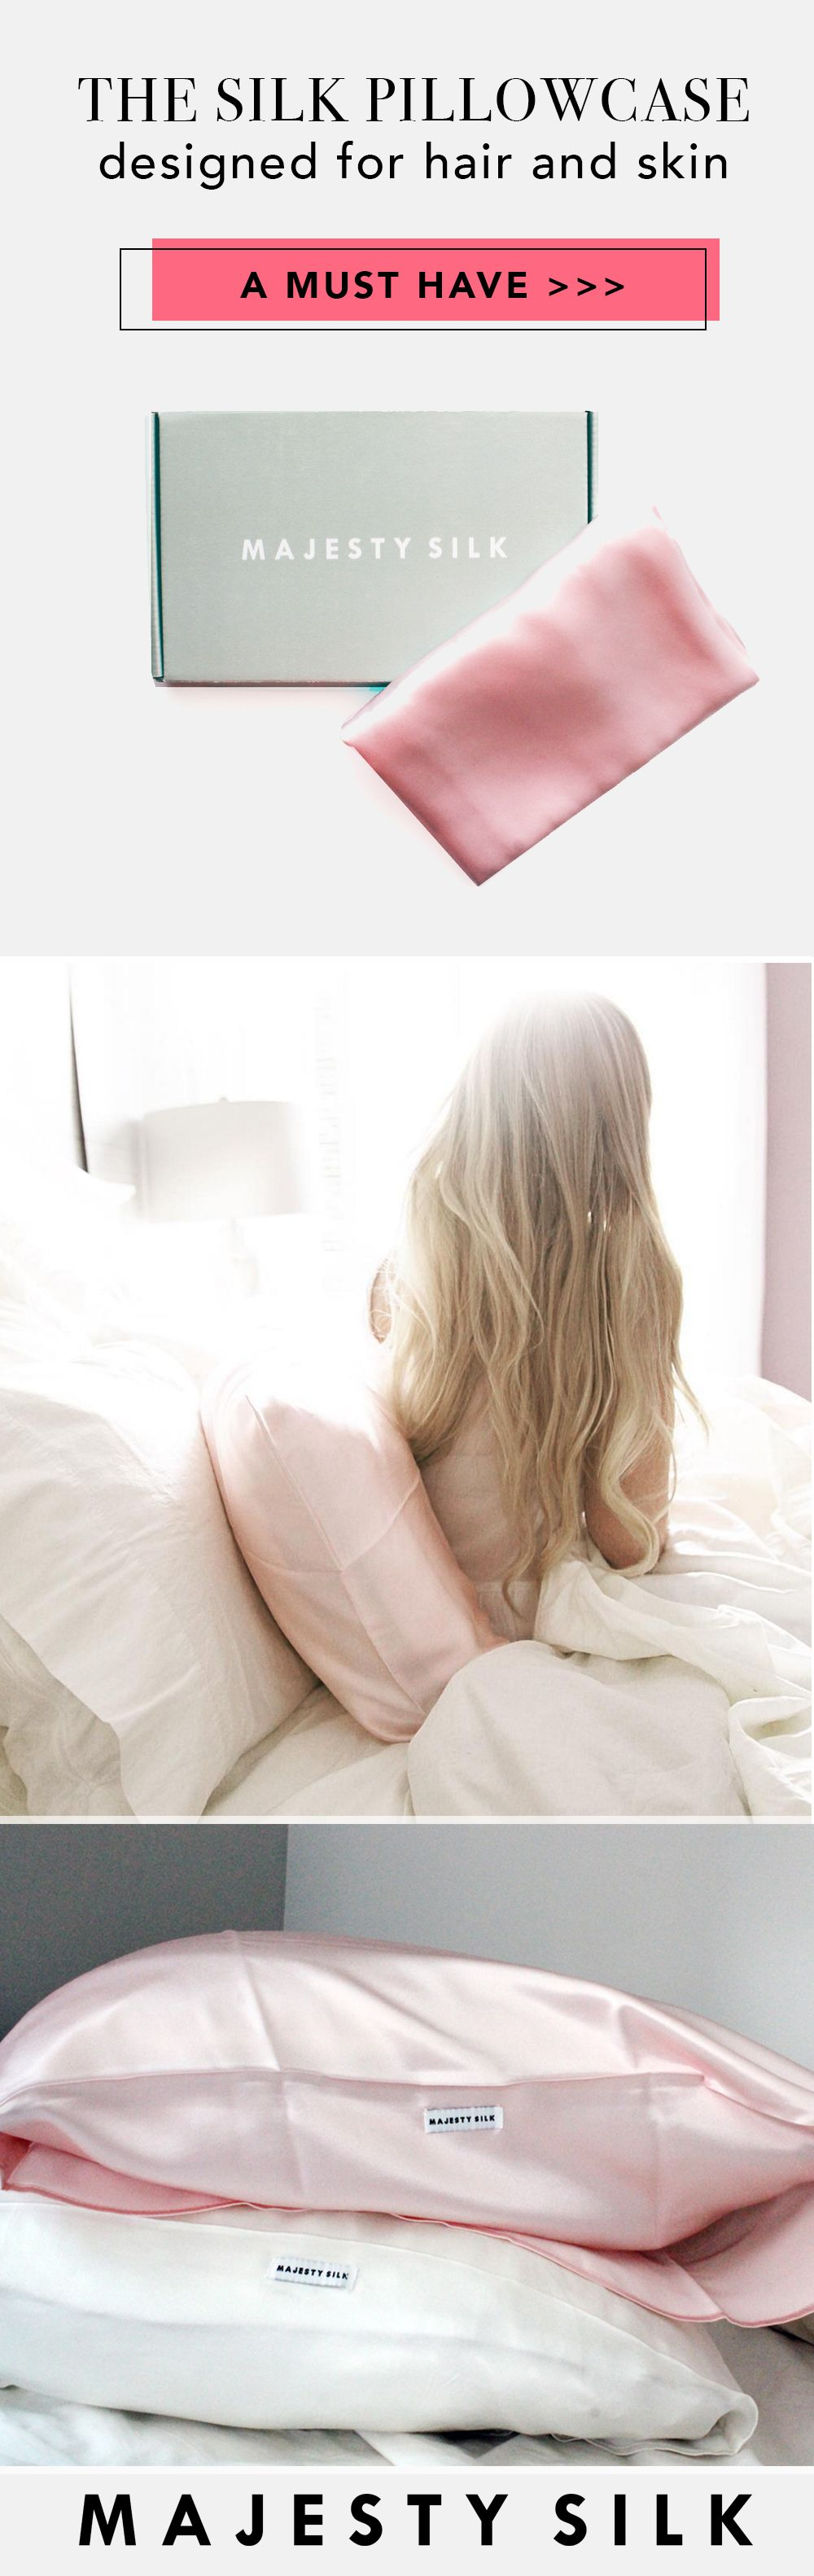 Best Silk Pillowcase For Skin Impressive Smooth Hair And Reduces Wrinkles Your Most Beautiful Sleep Yet Design Ideas